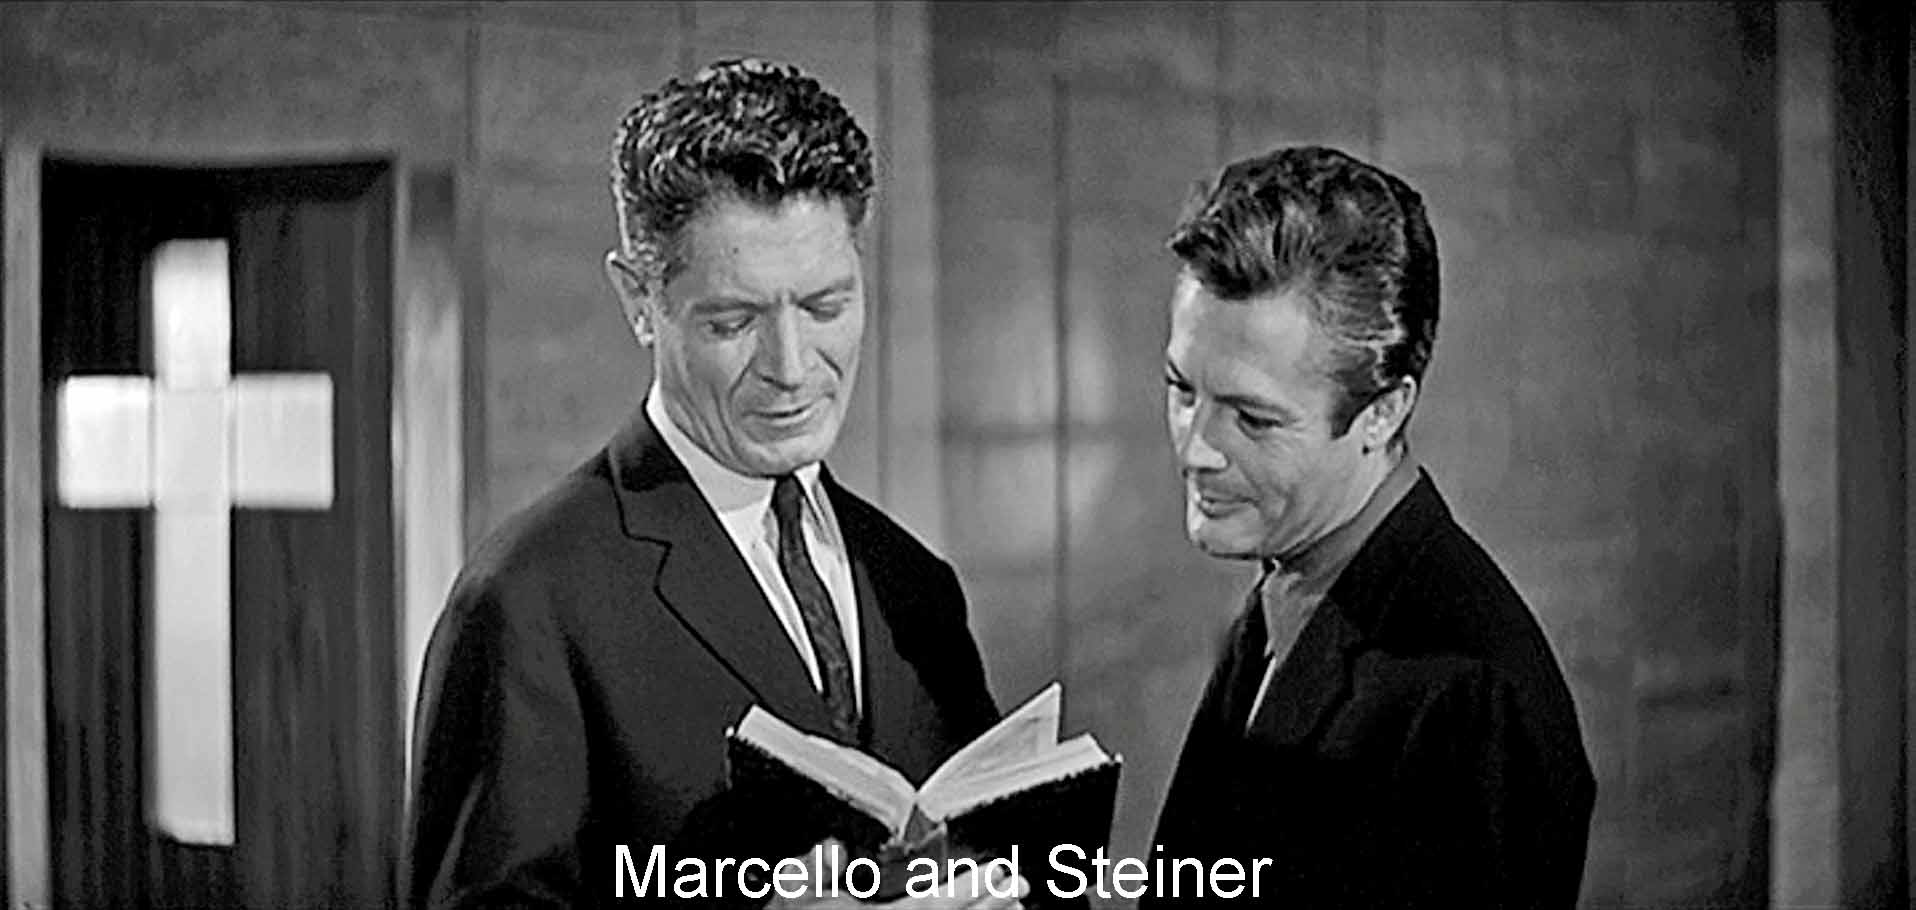 Marcello and Steiner